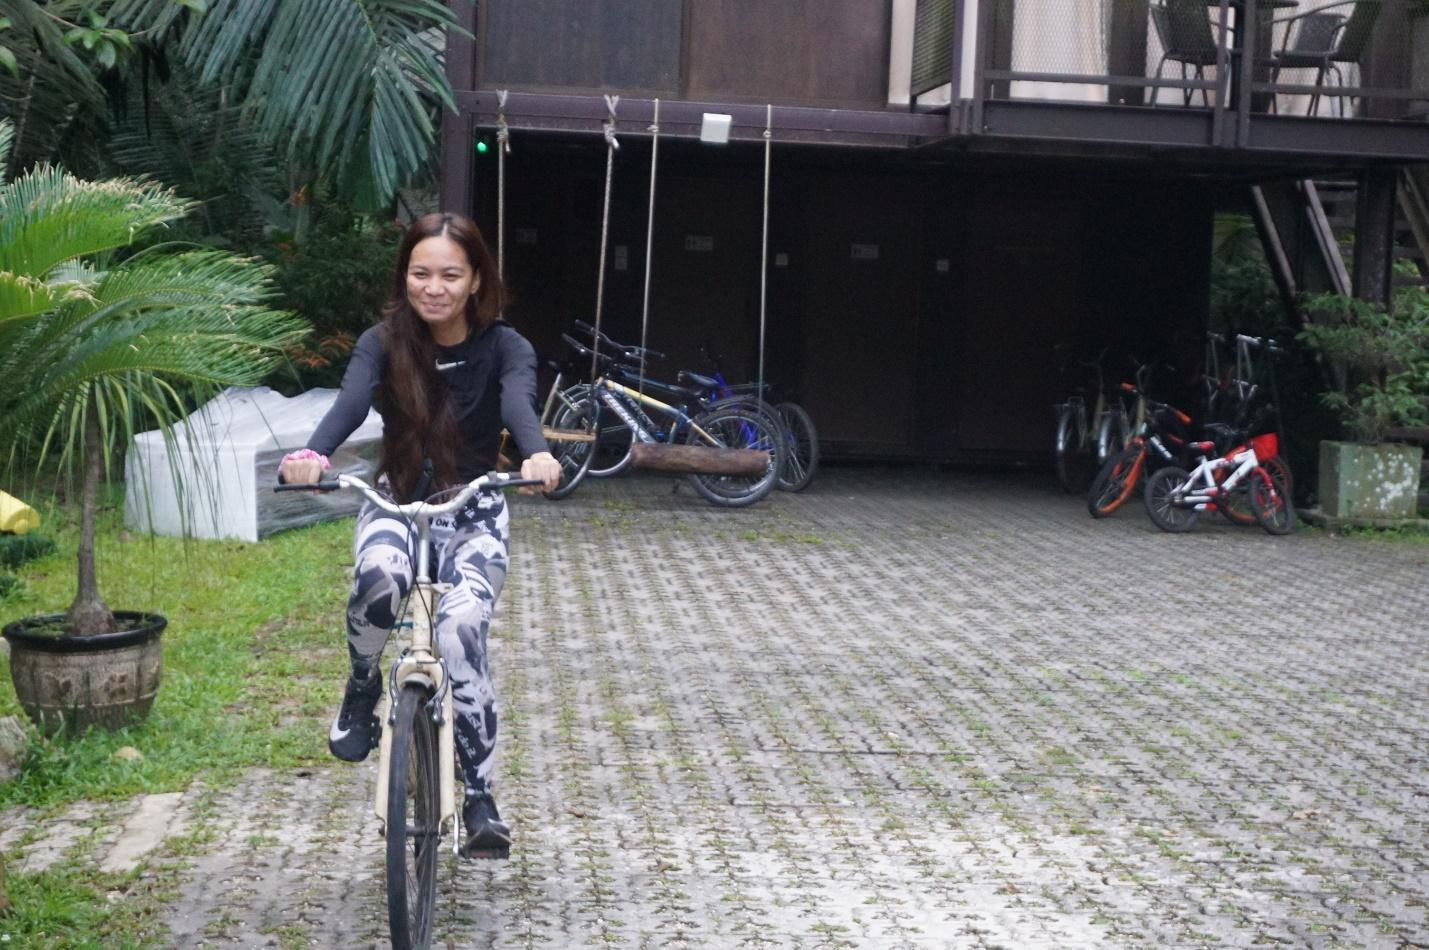 A person riding a bikeDescription automatically generated with medium confidence